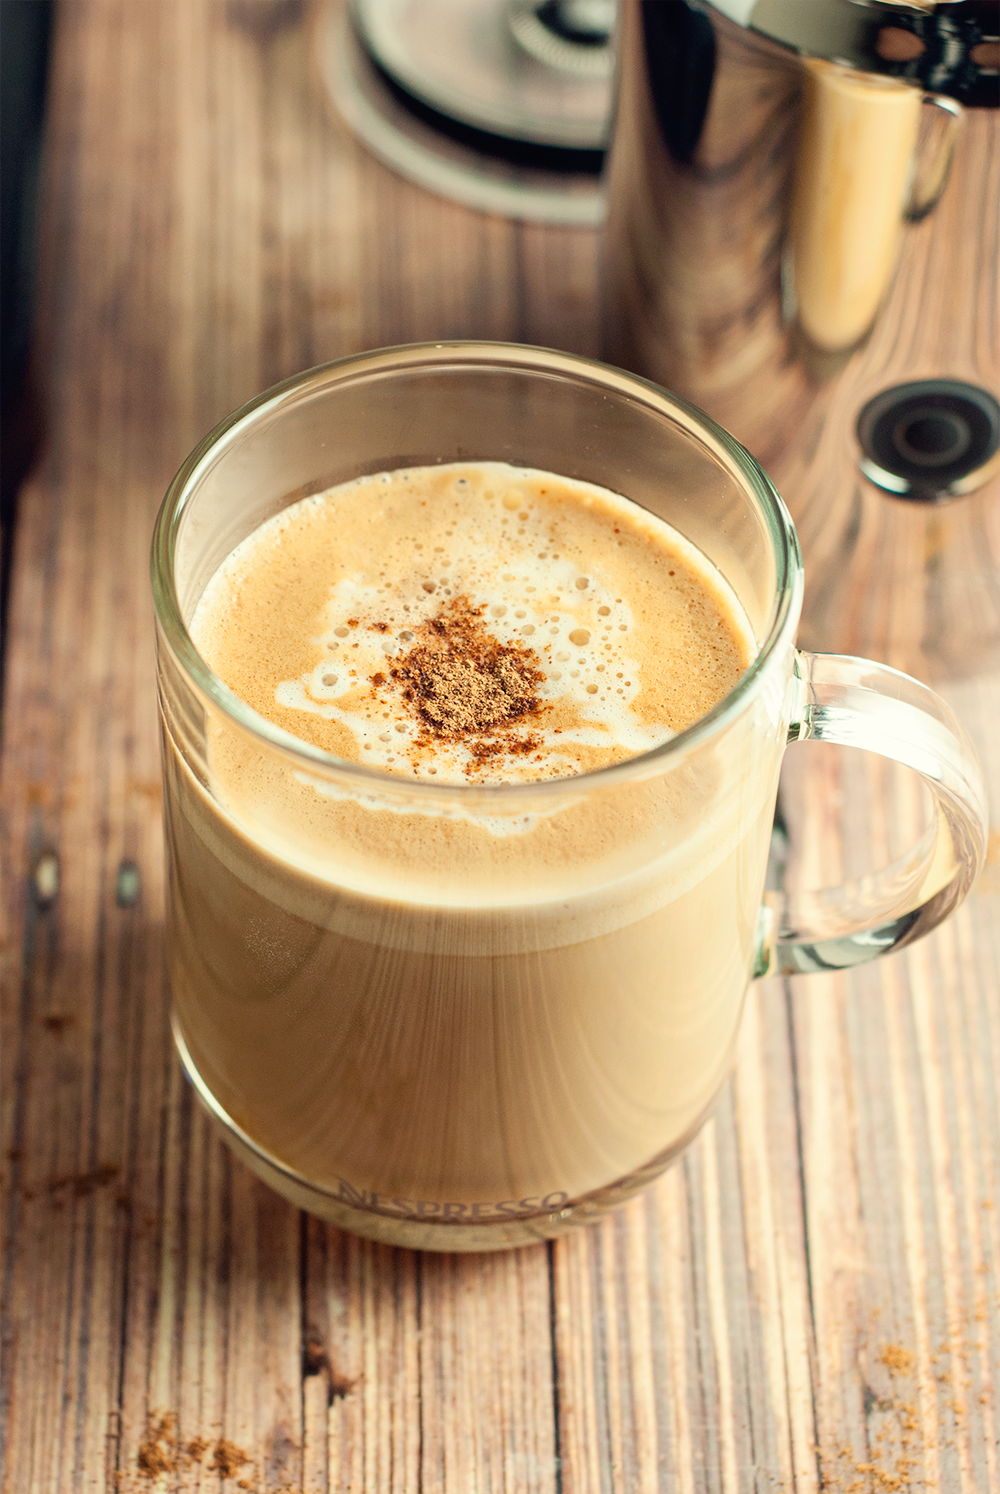 Enjoy a simple white chocolate eggnog latte this holiday season, garnished with a dash of nutmeg!